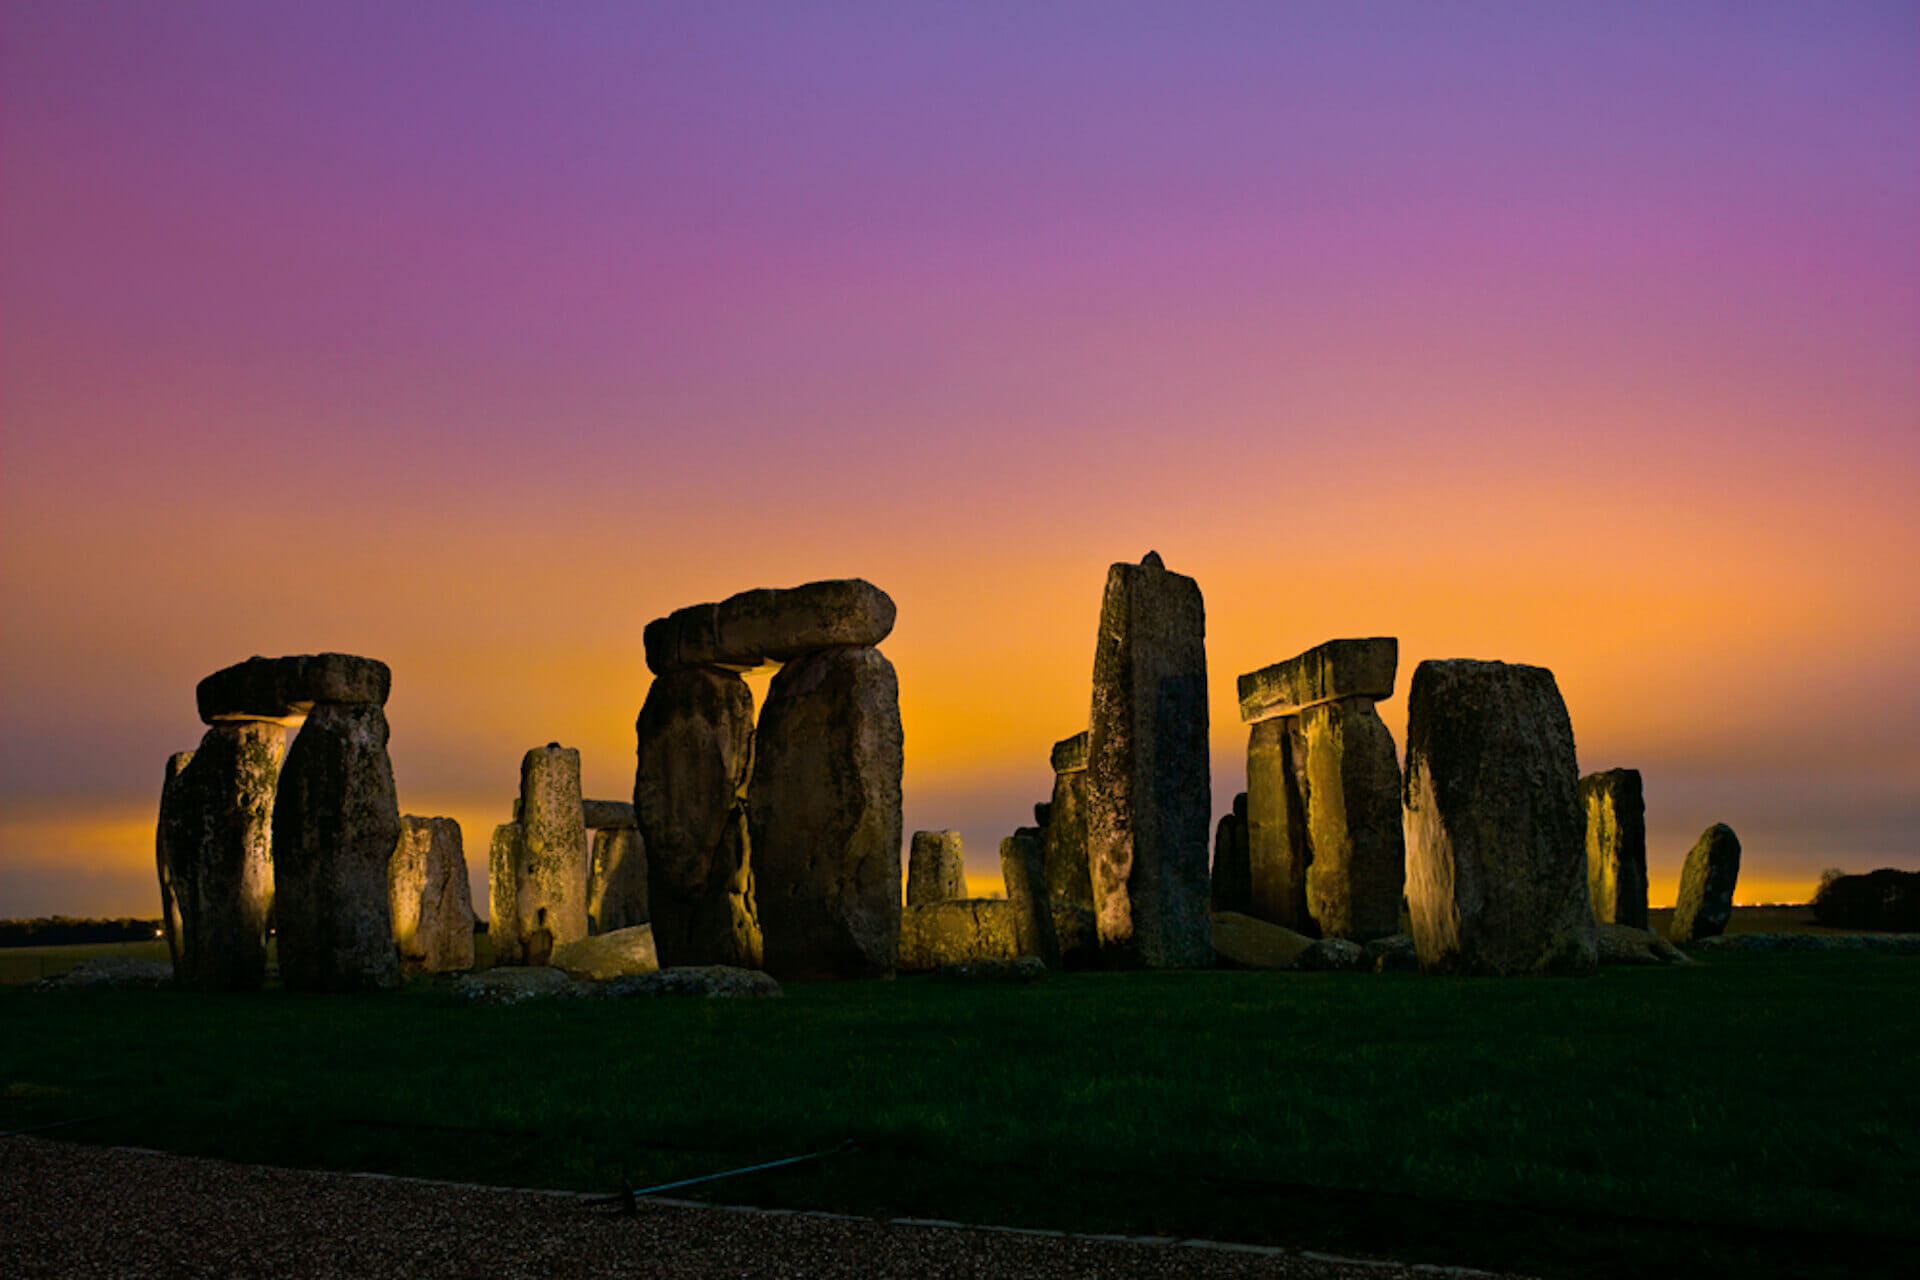 Paul Oakenfold set to make DJ history as the first to play StonehengePaul Oakenfold Stonehenge